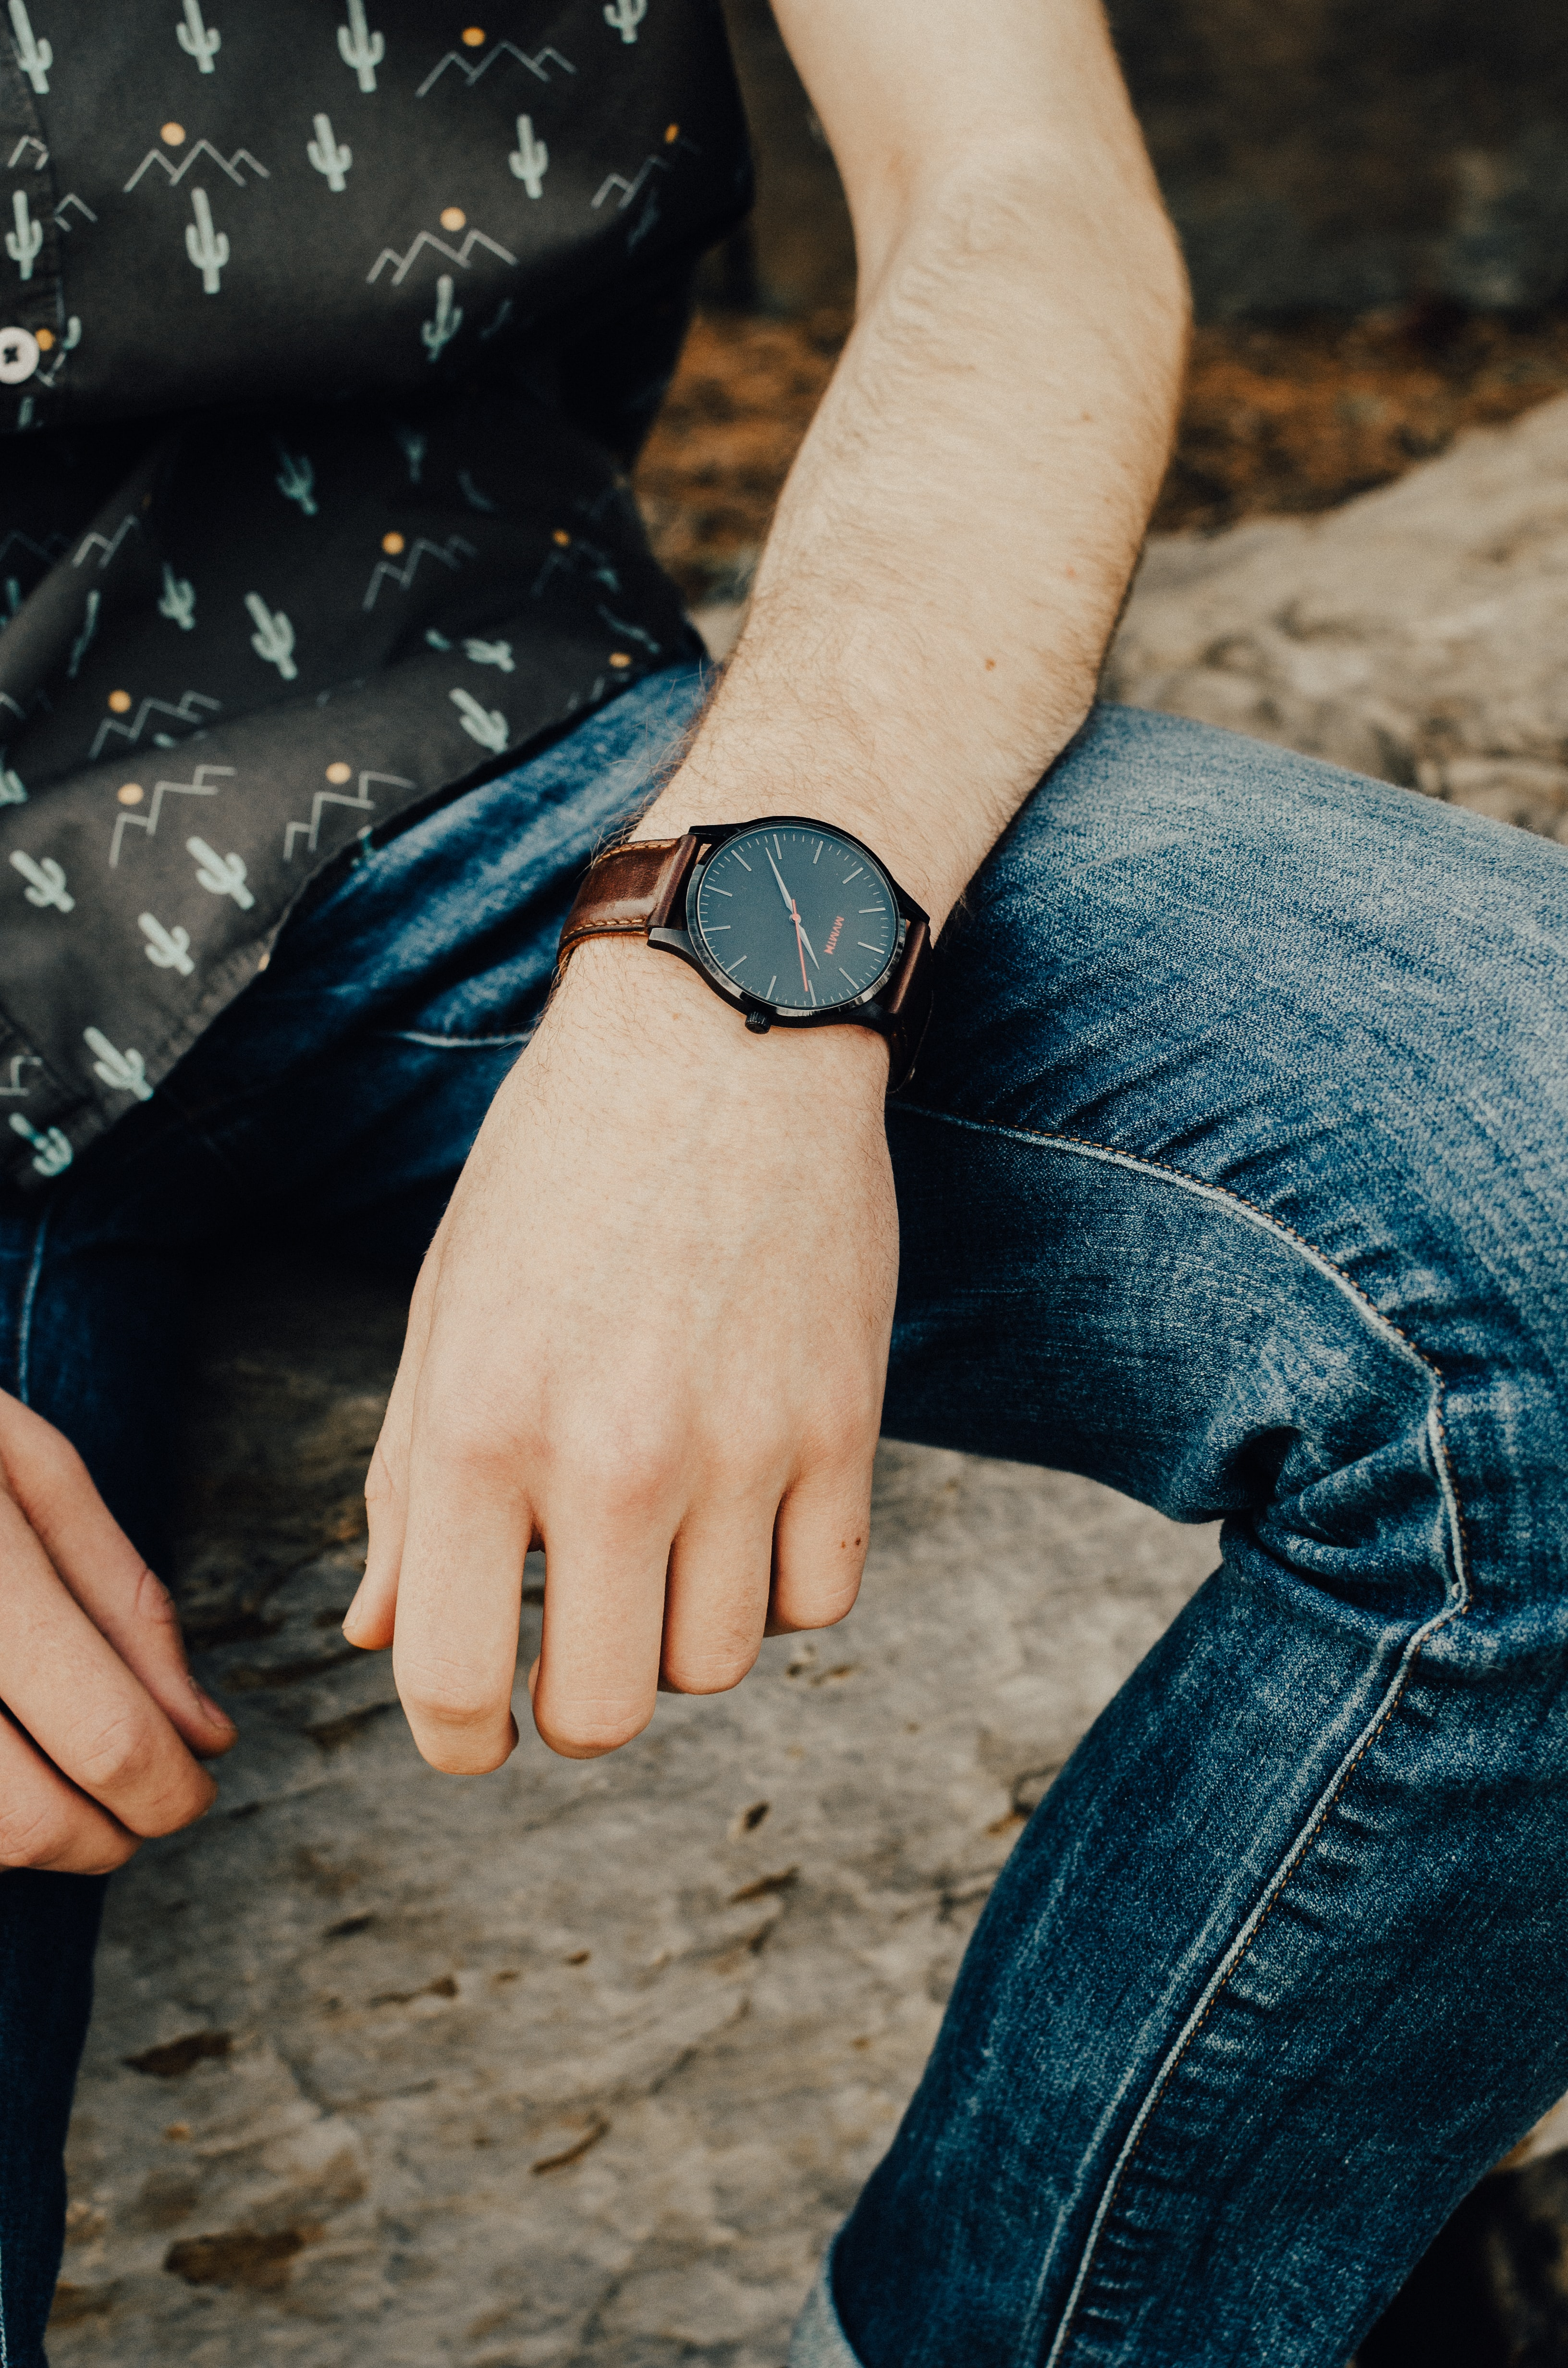 photo of person wearing analog watch and blue jeans and black top